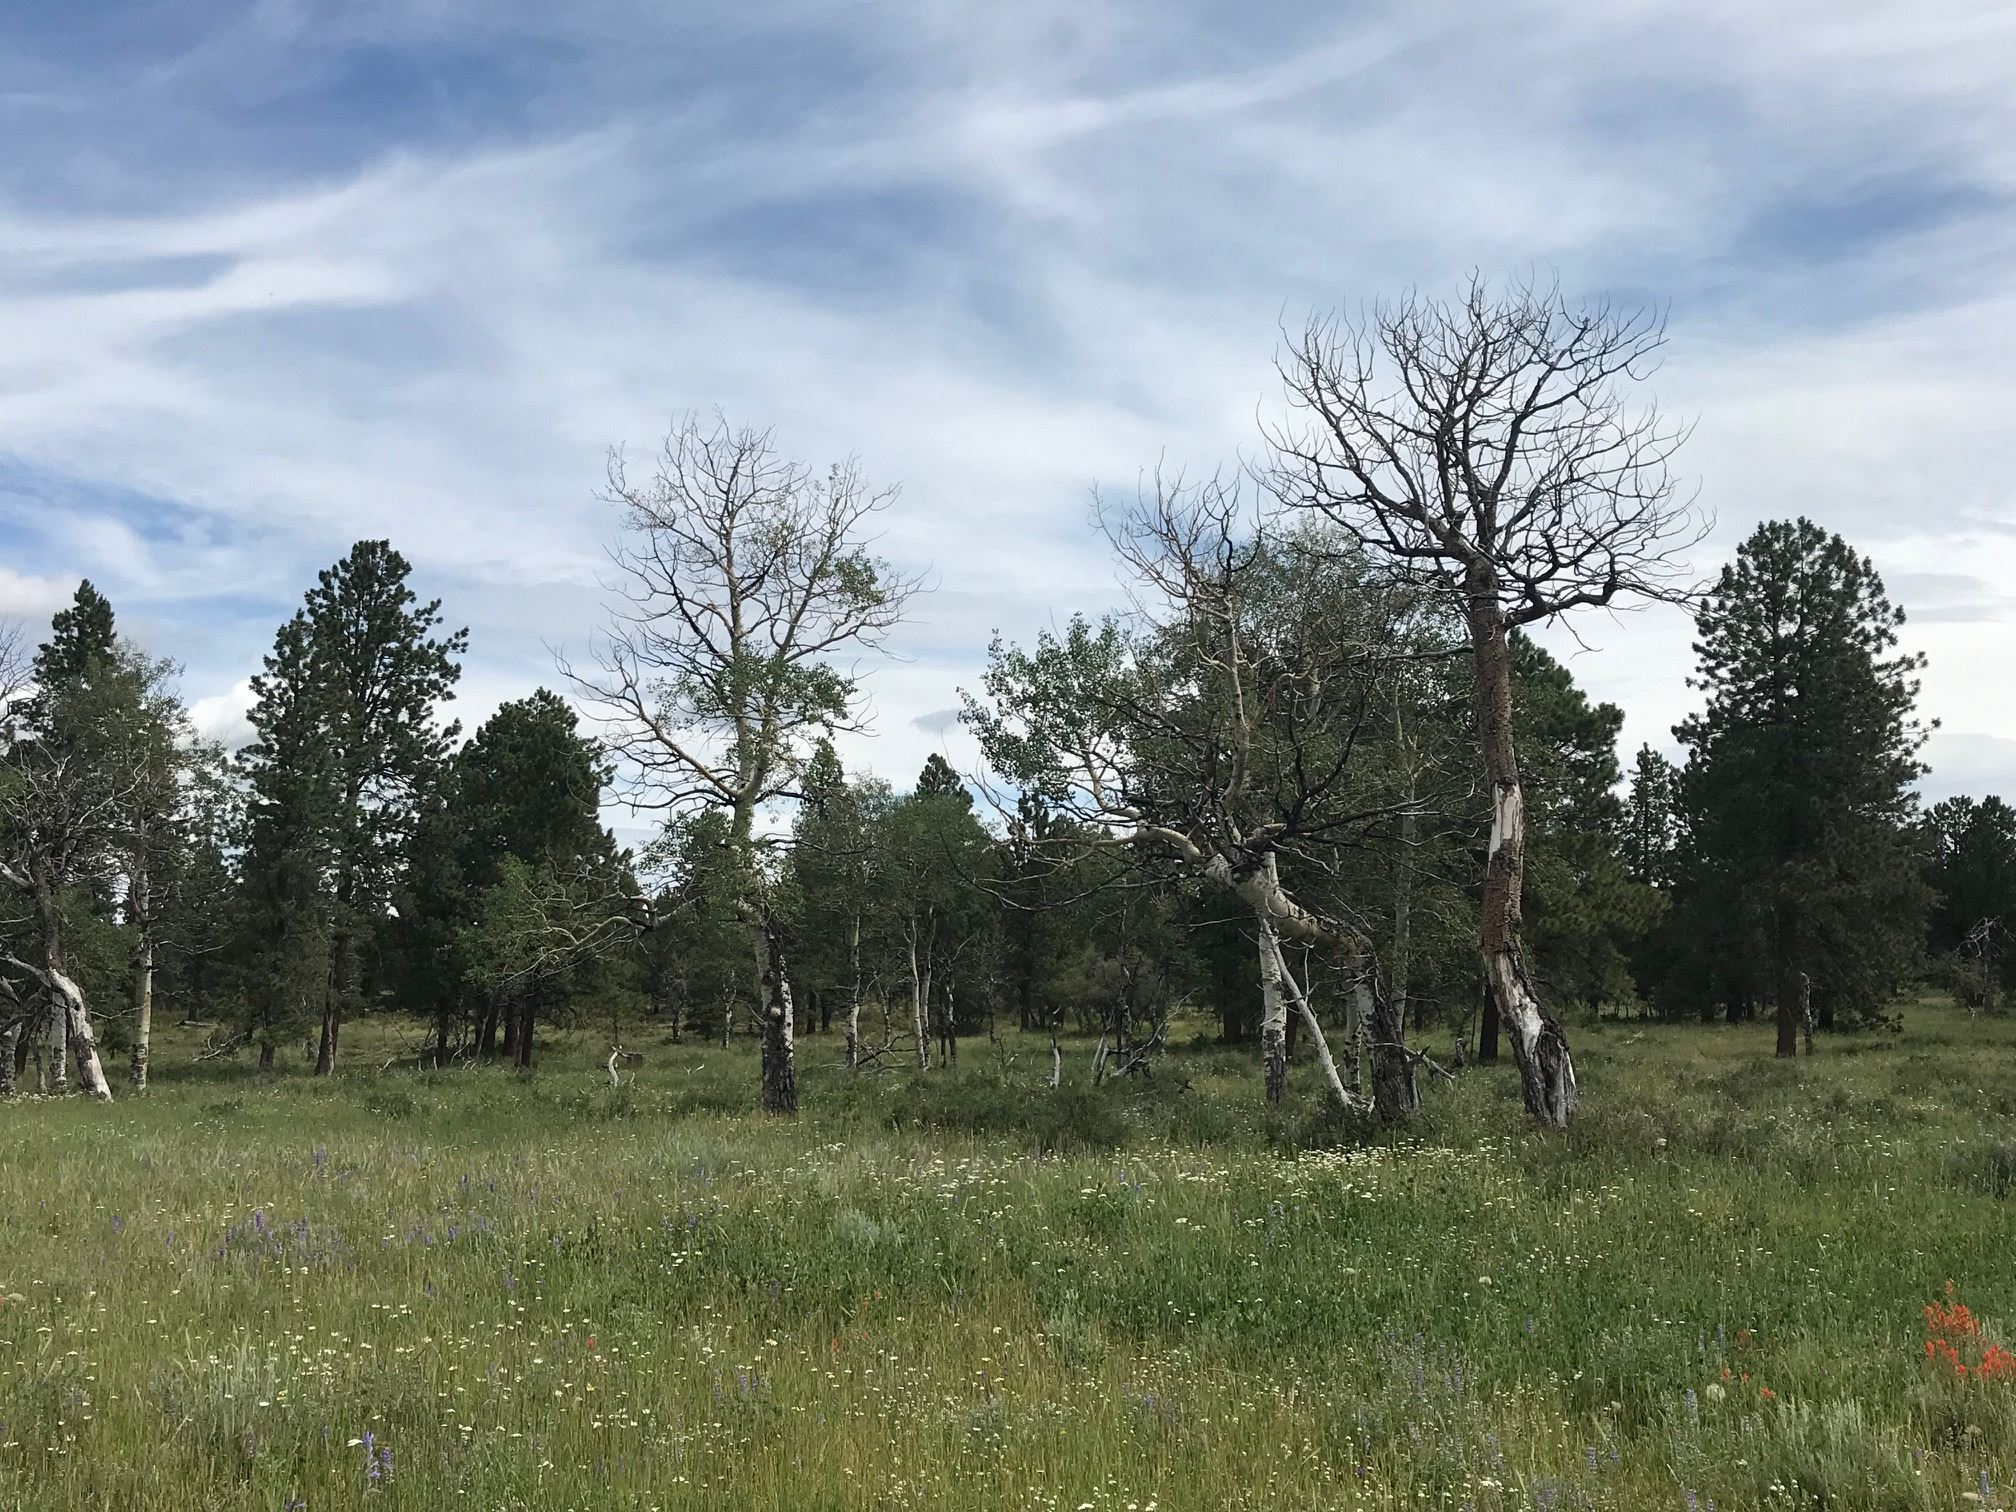 Old-growth aspens and ponderosa pine trees interspersed with wildflowers